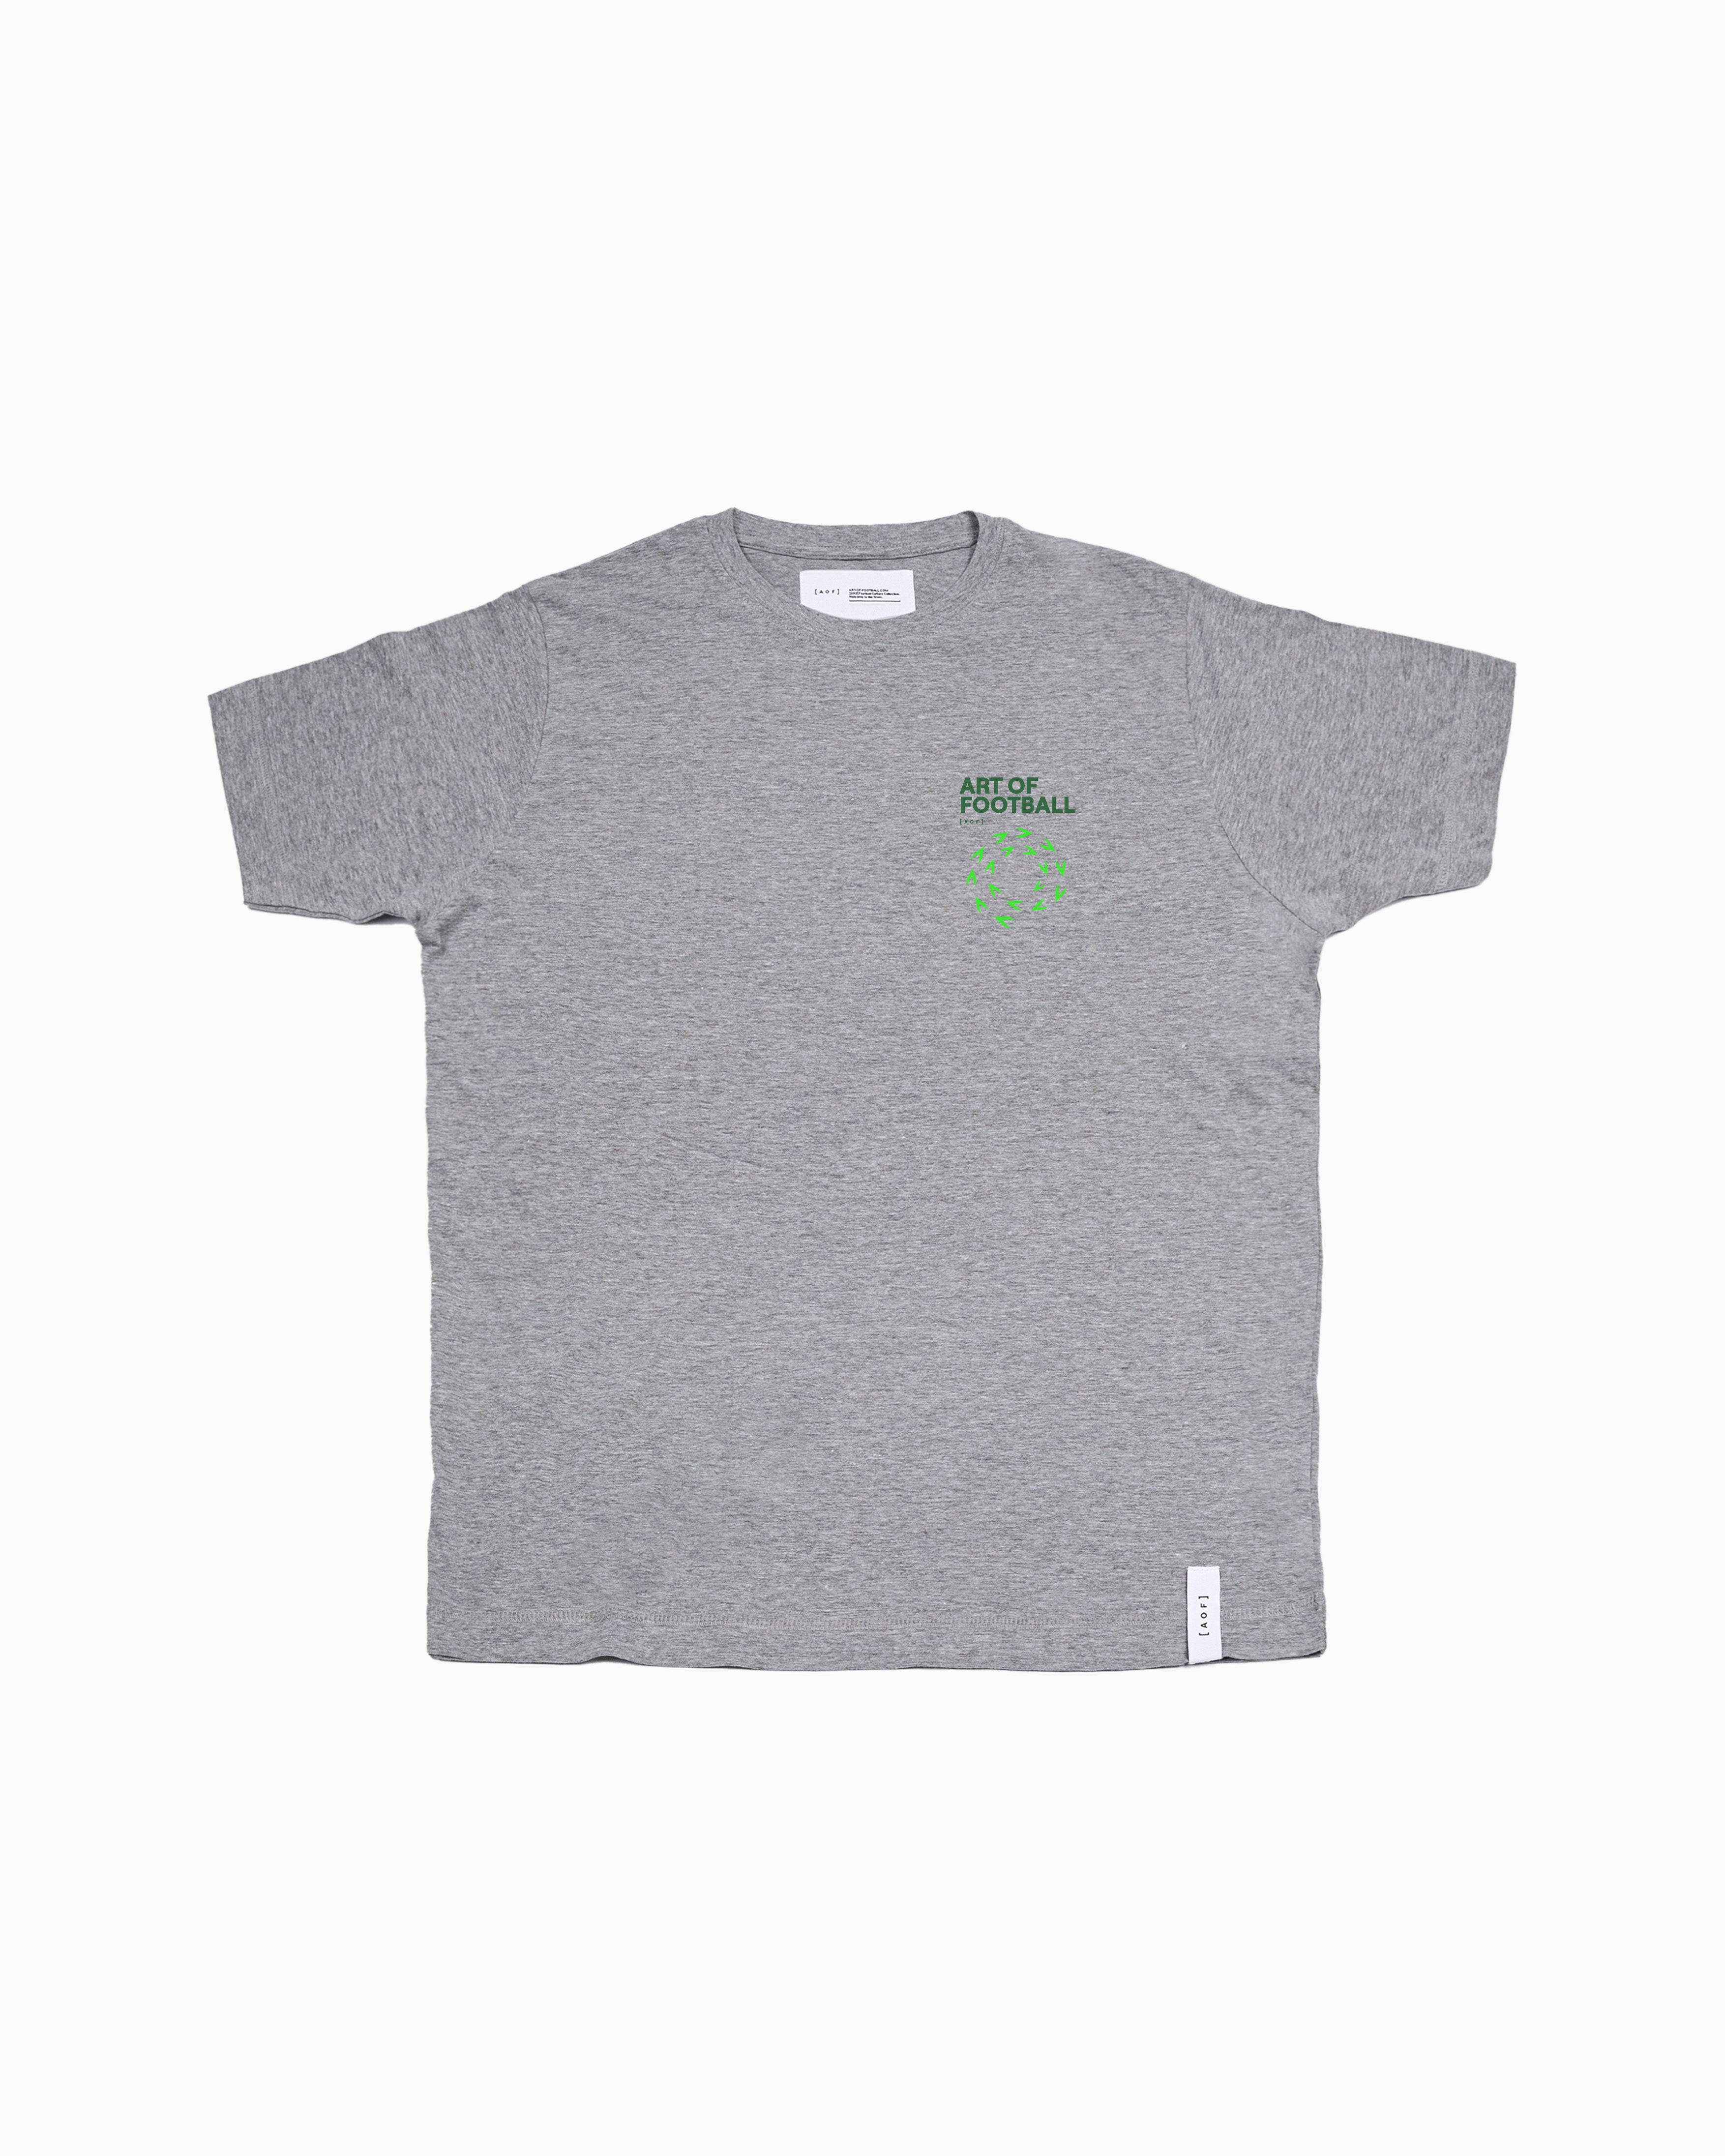 Super Eagles - Tee or Sweat